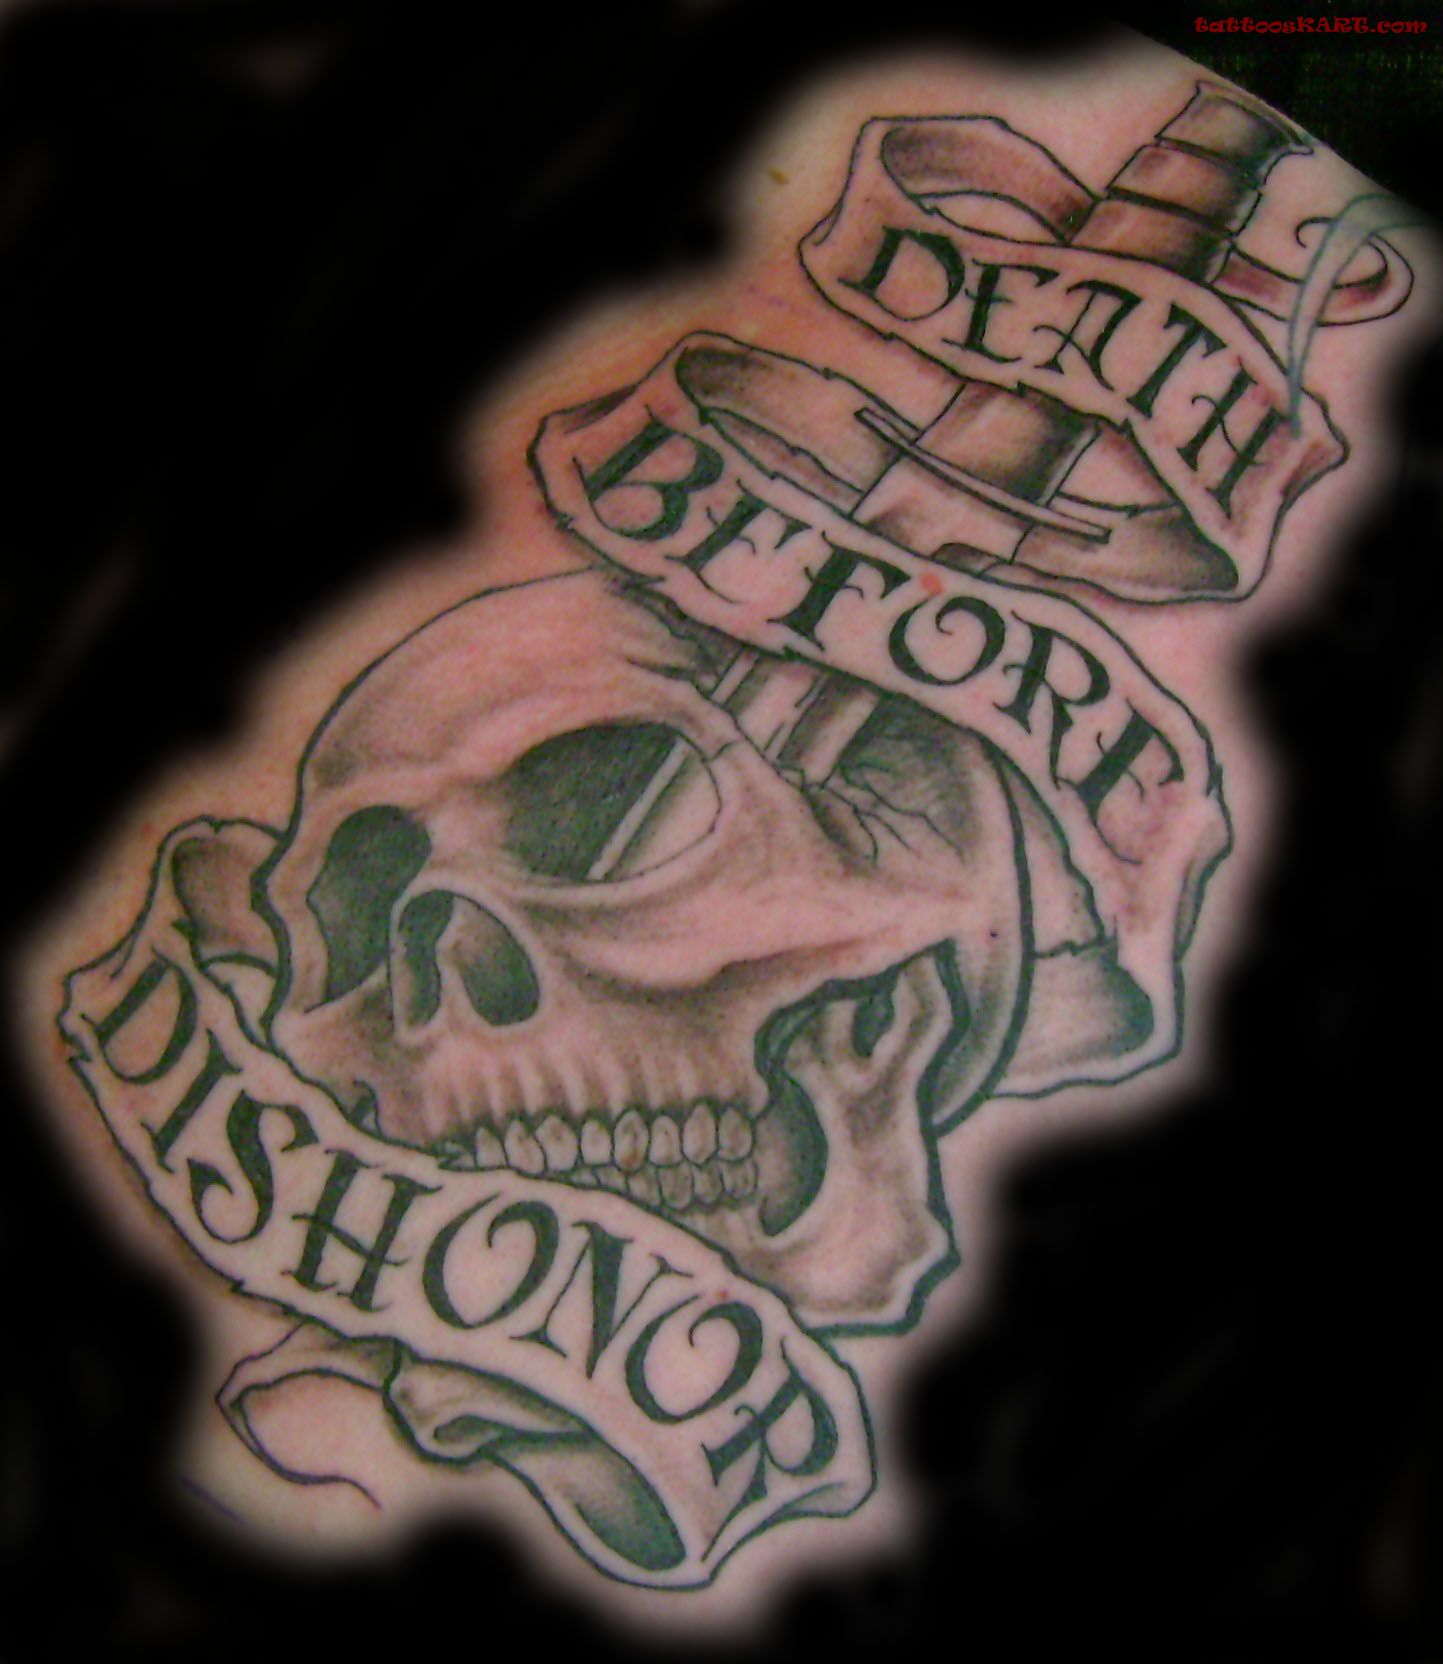 Scary Skull With Death Banner And Dagger Tattoo On Hand